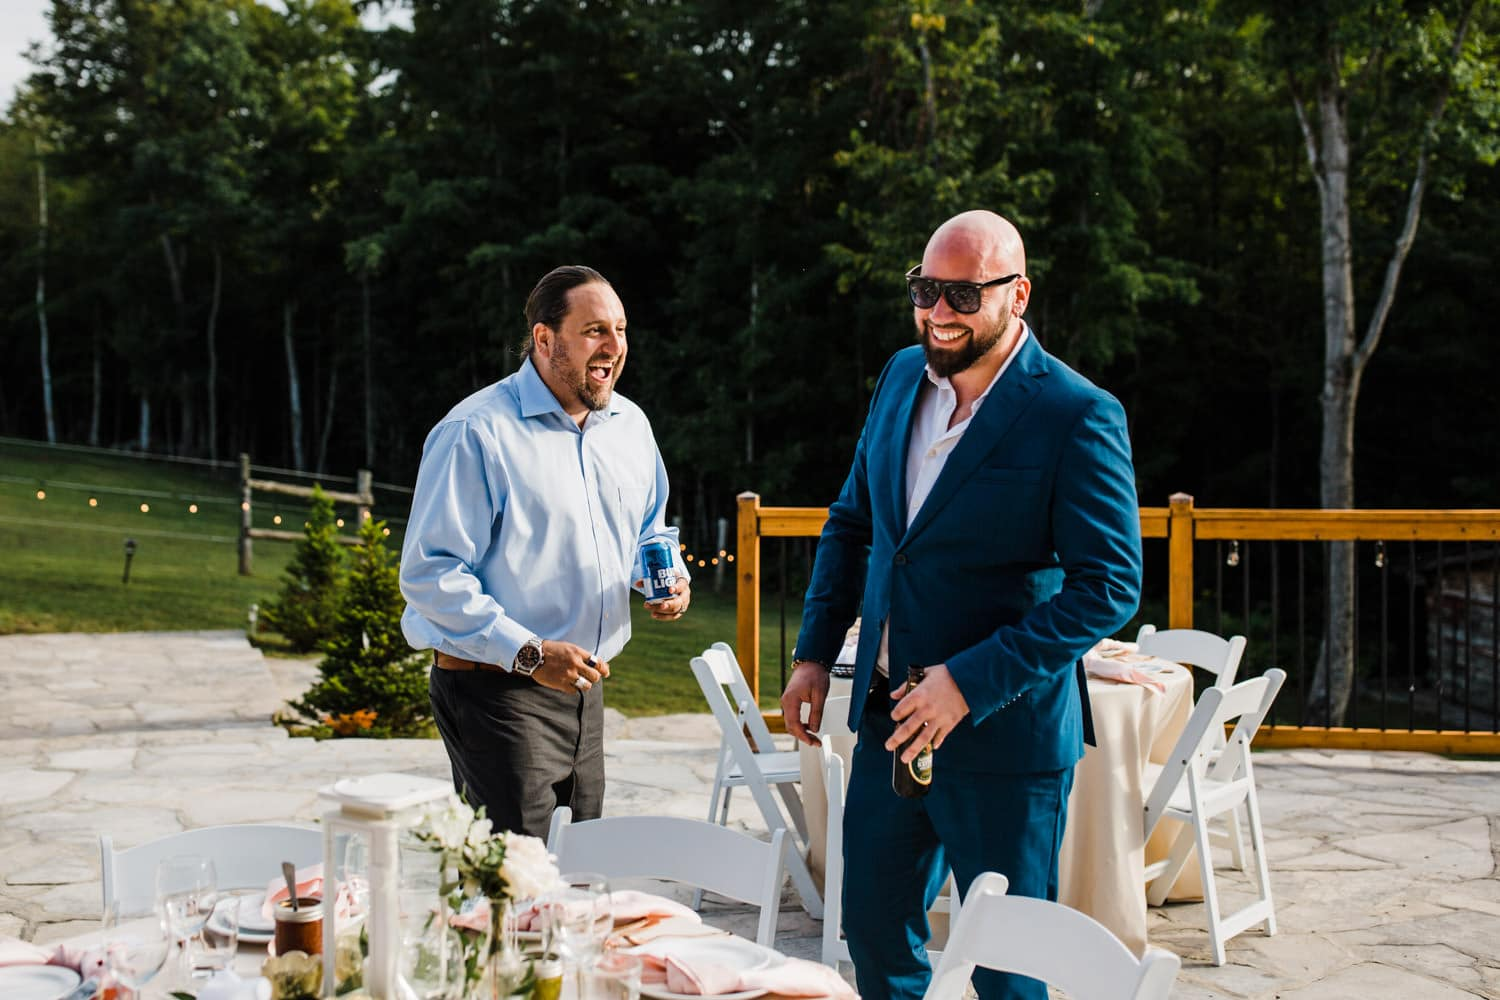 guests laugh together at outdoor surprise wedding on stone patio